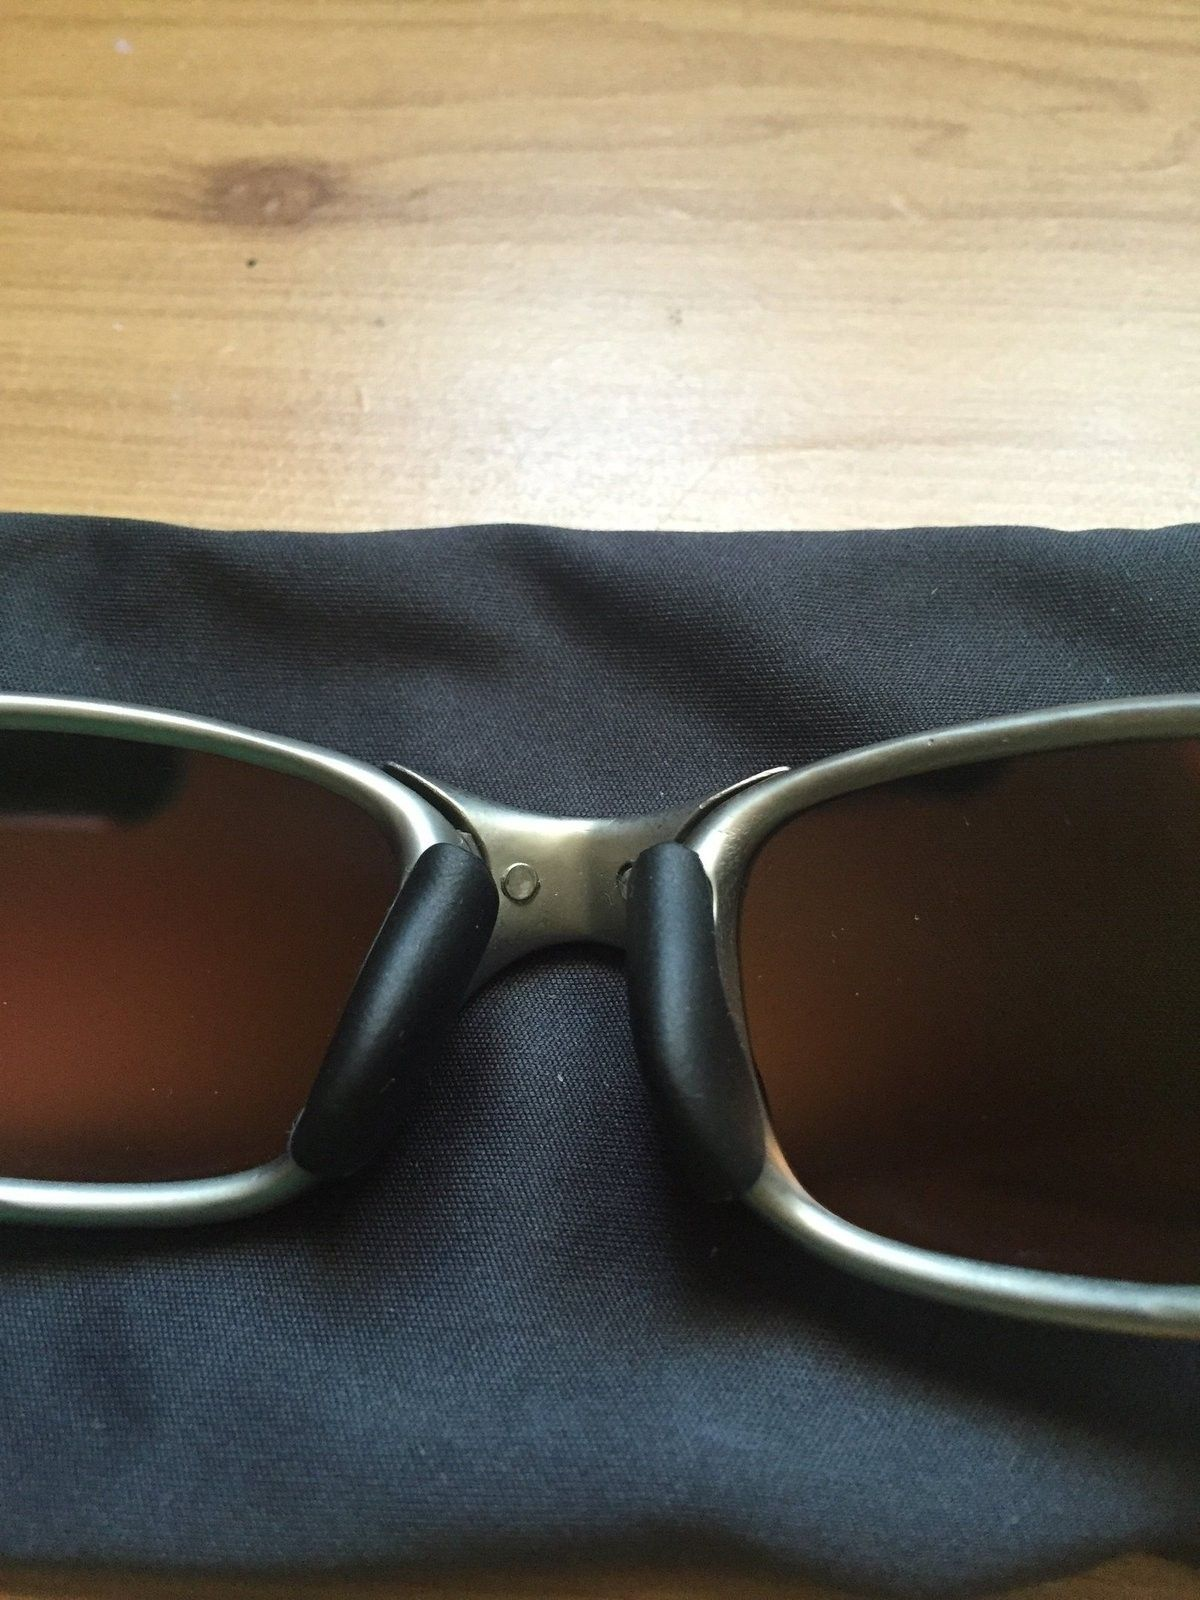 ALL SOLD!!!!Juliet Plasma Fire+1 Ruby Lens Reduced!! - image.jpg